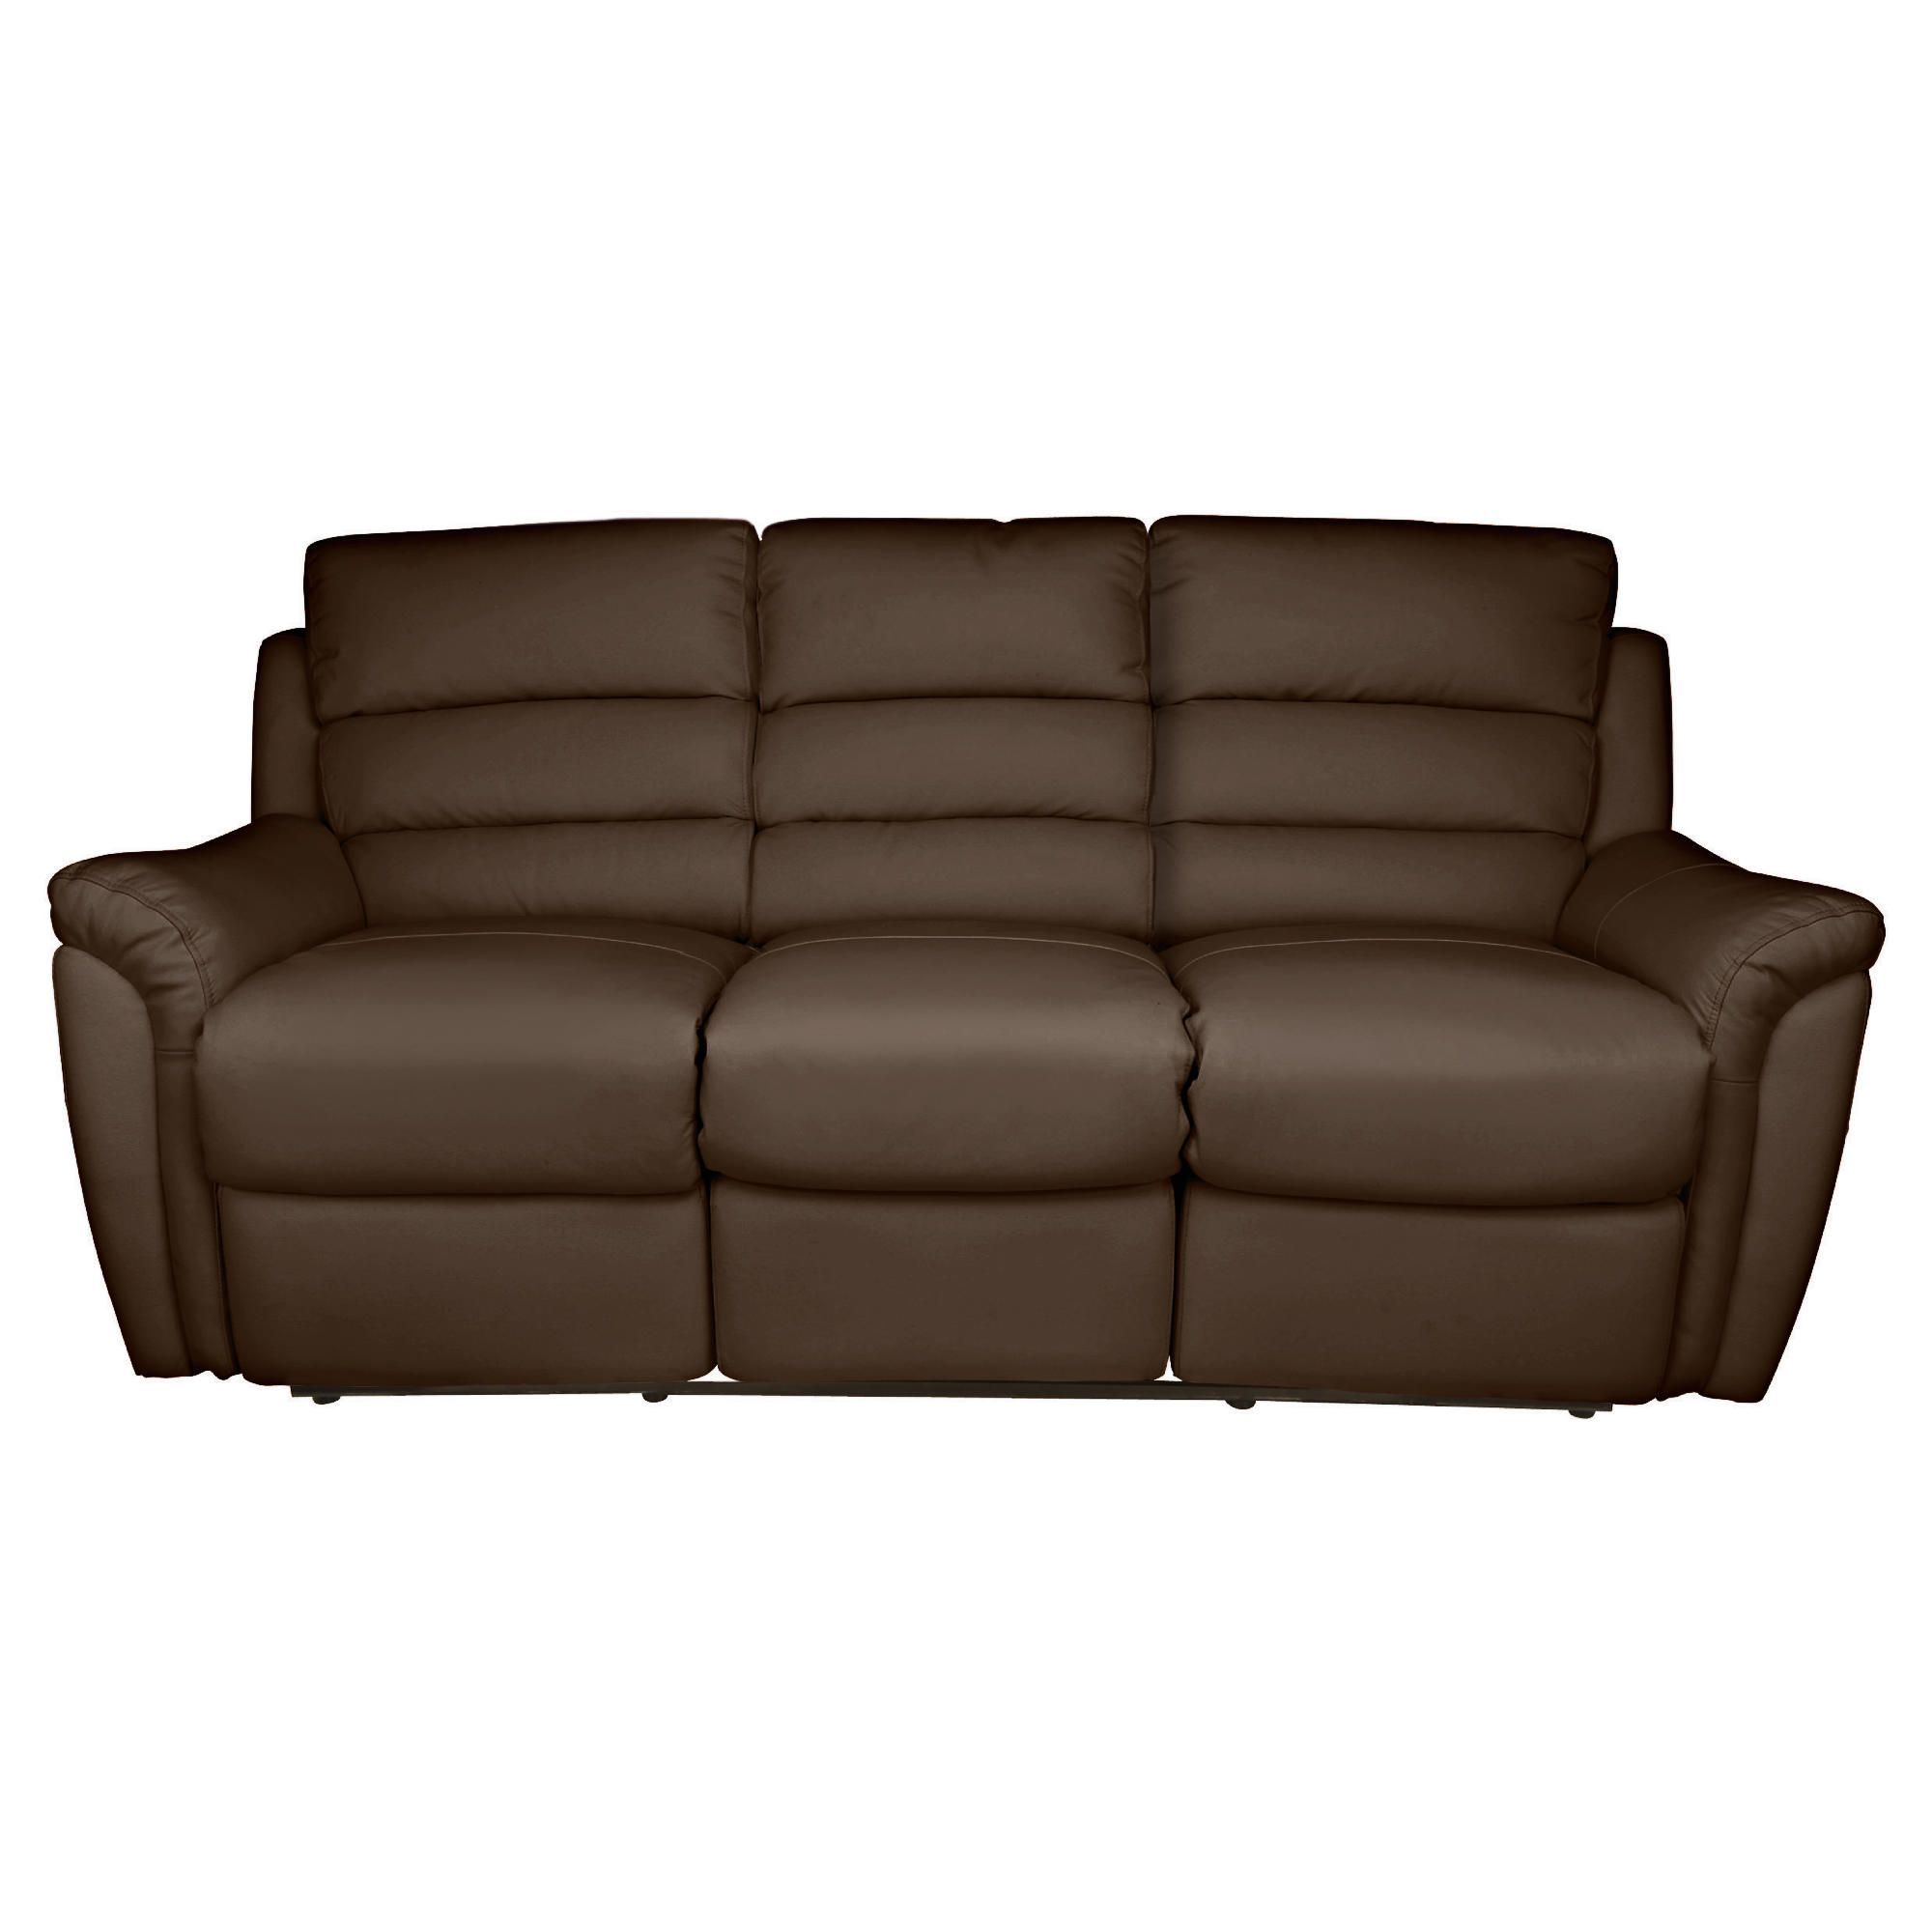 Chloe Large Recliner Sofa Leather, Brown at Tesco Direct